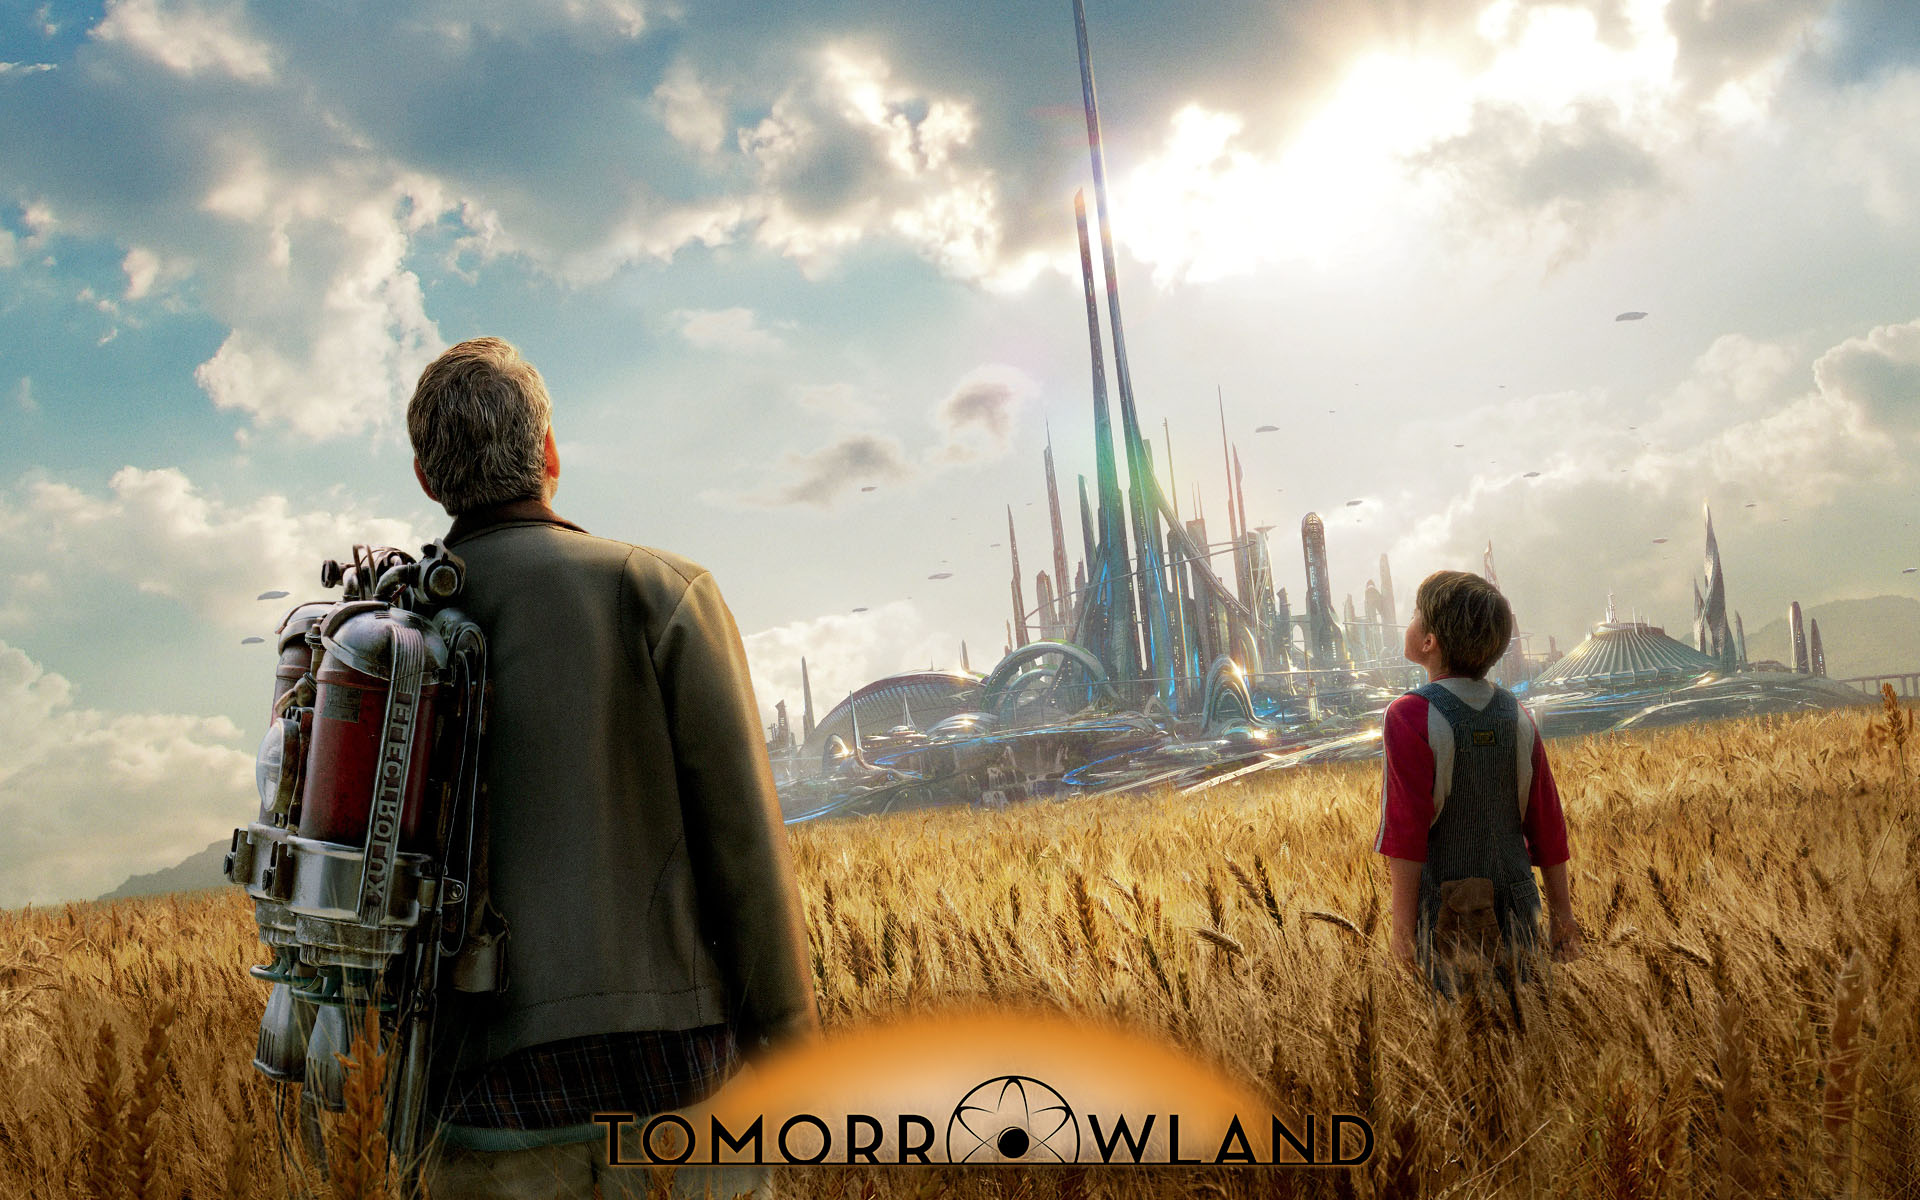 tomorrowland-movie-poster-2015-space-mountain-wallpaper.jpg